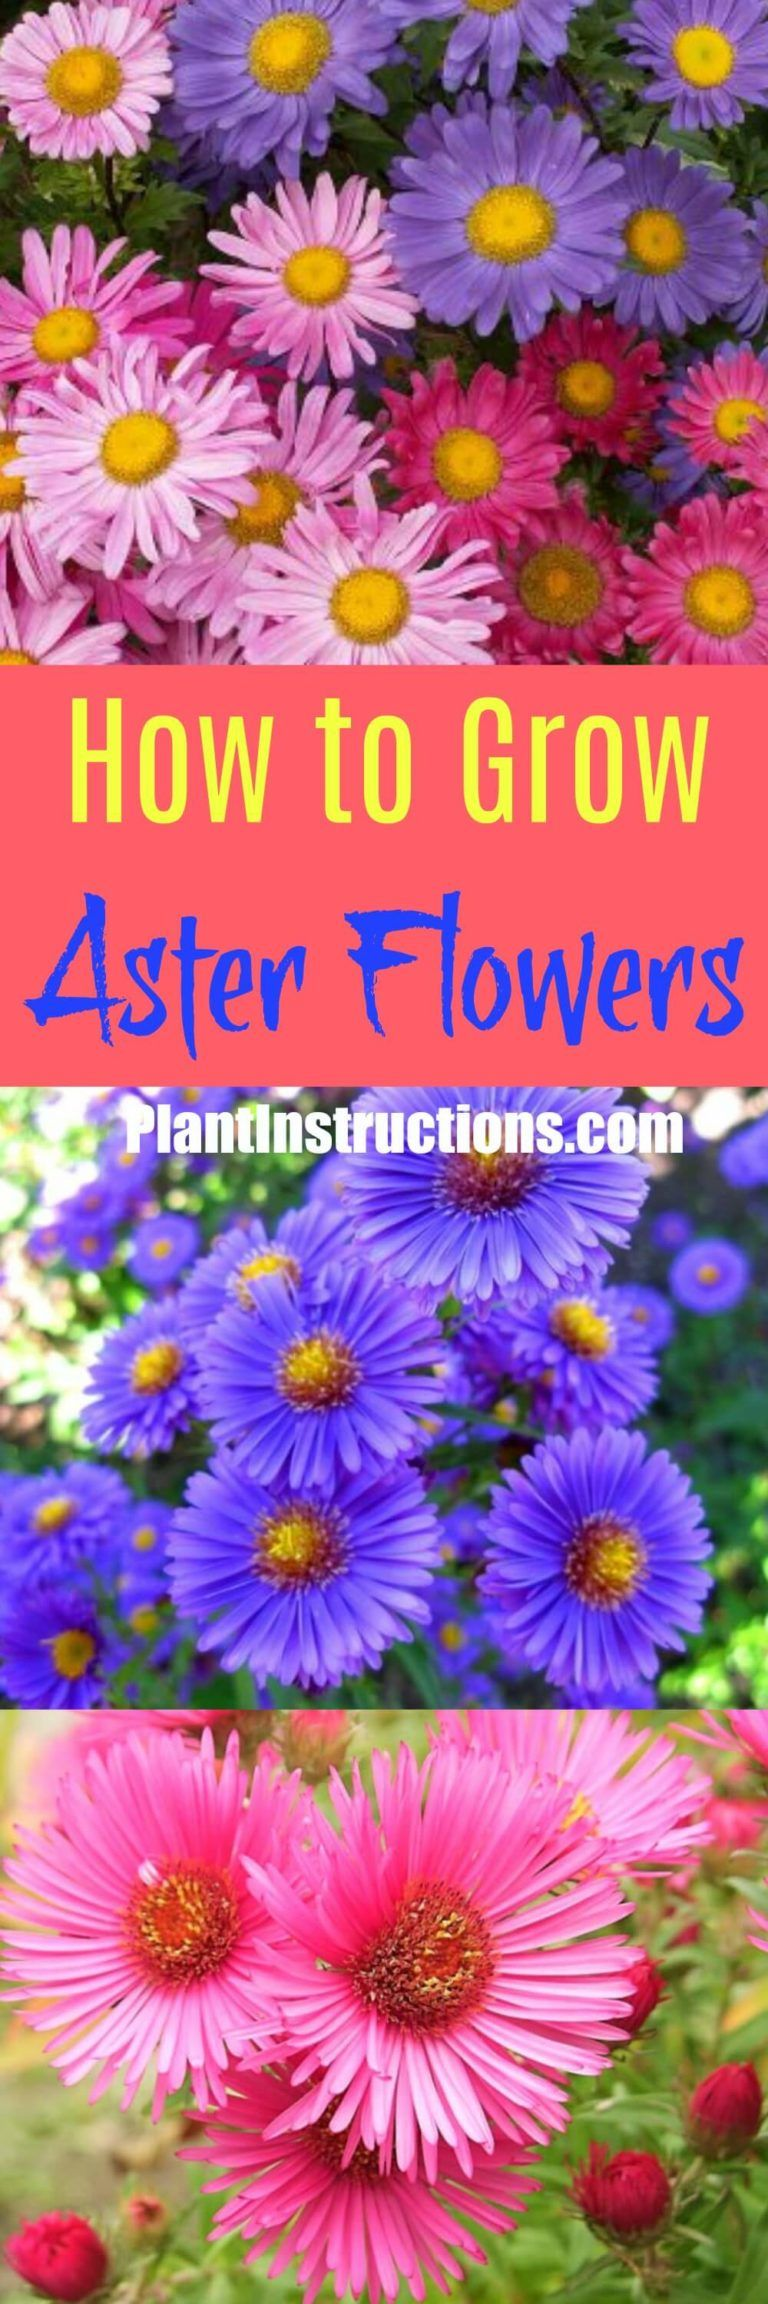 How To Grow Aster Flowers Aster Flower Growing Flowers Flowers Perennials